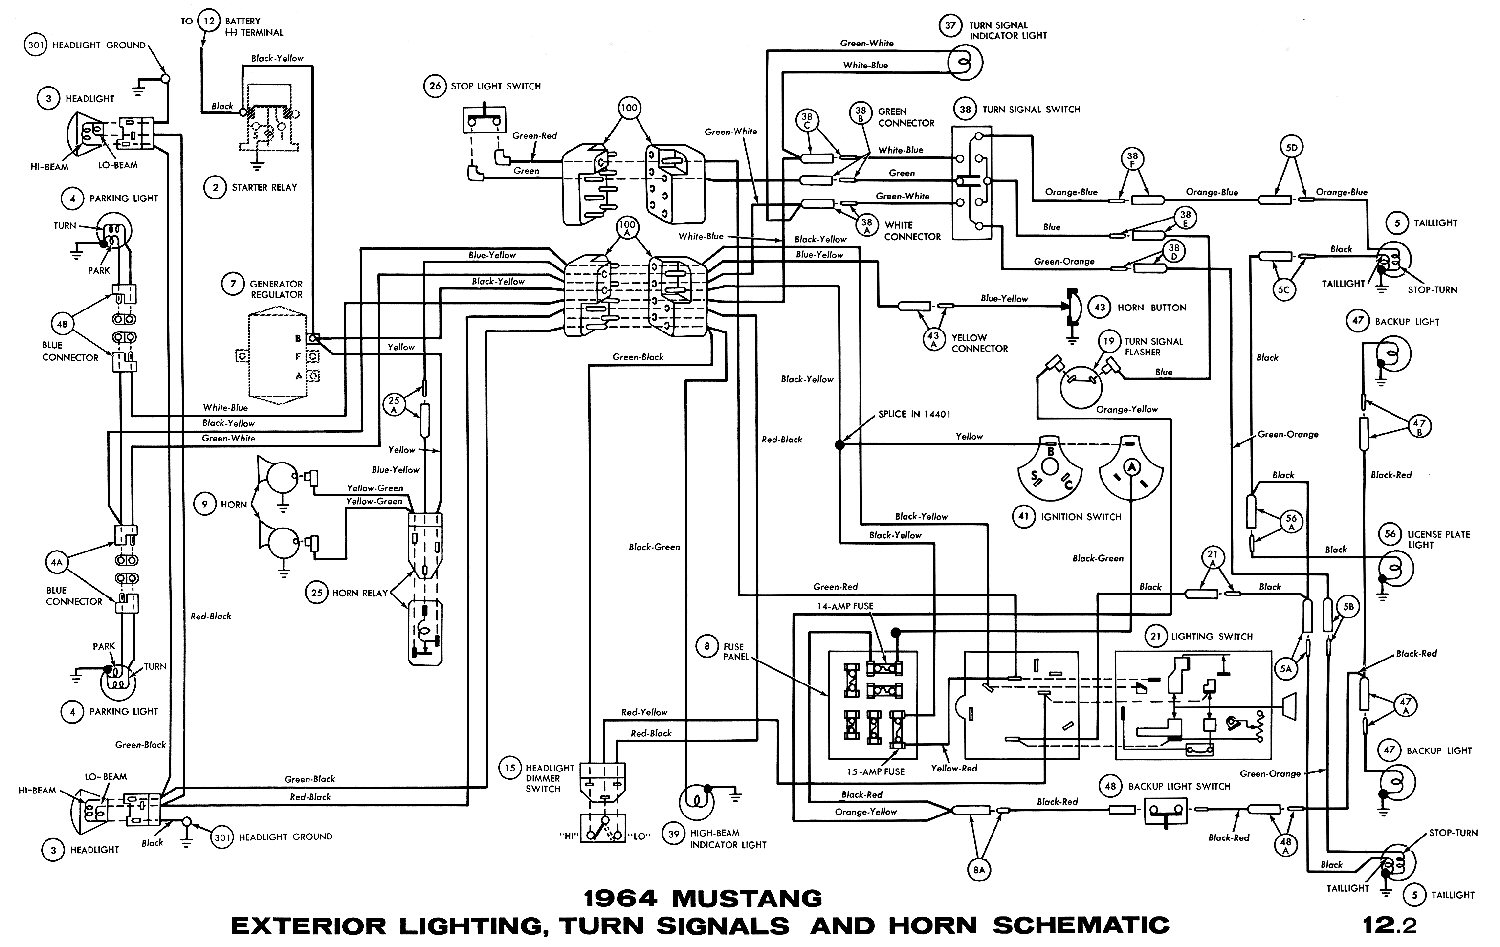 1964i 66 mustang wiring diagram 1966 mustang dash wiring diagram 65 mustang dash wiring diagram at bayanpartner.co